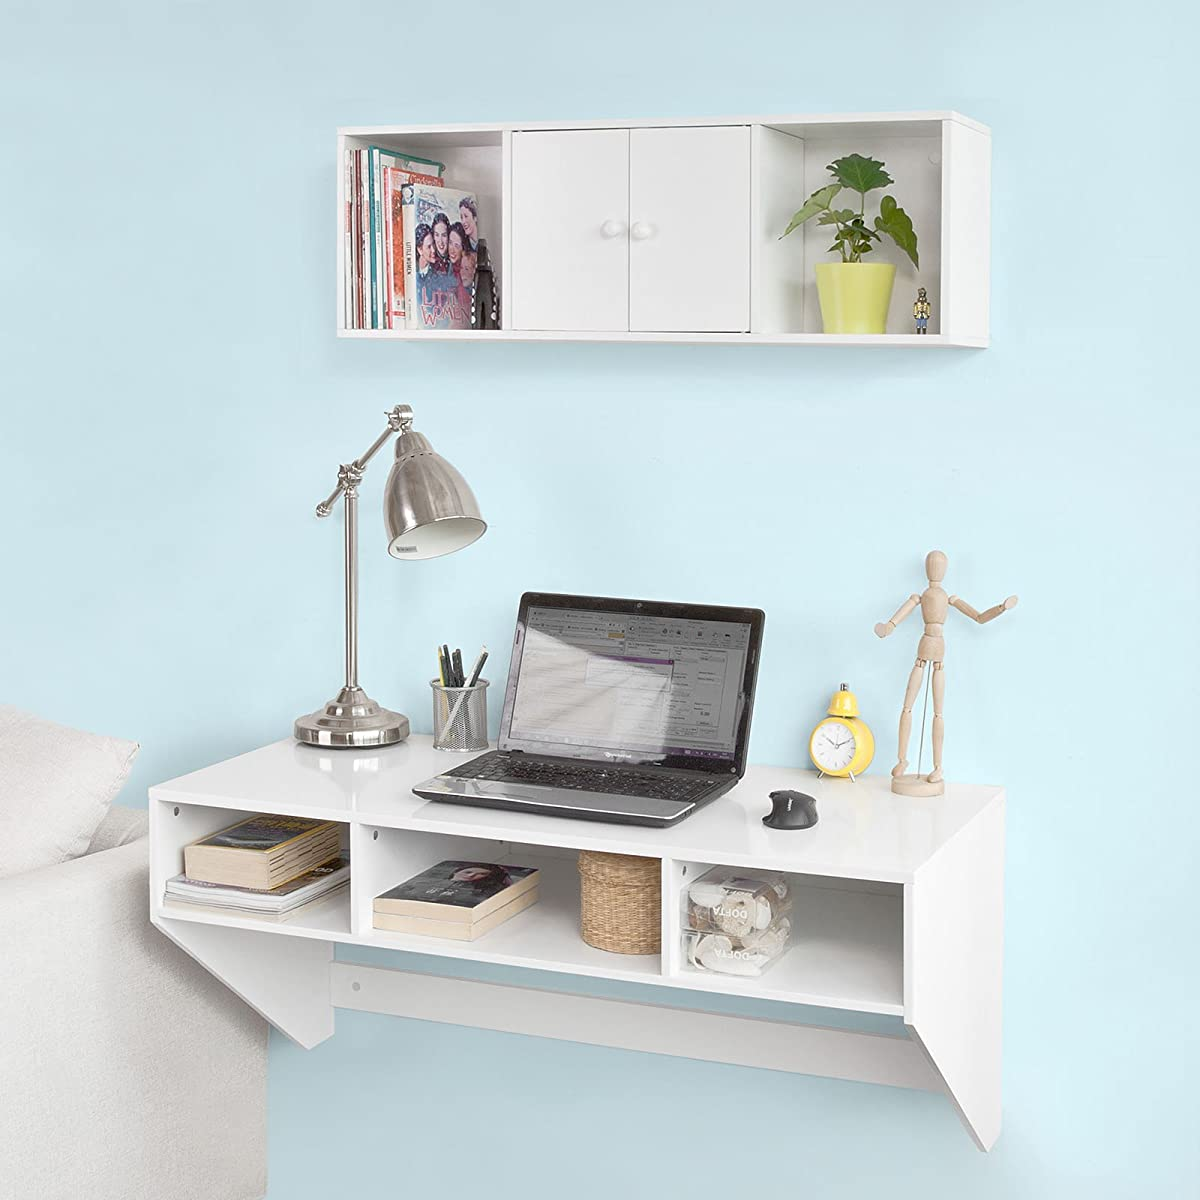 Haotian White Wall-mounted Table Desk with 3 Drawers, Home Office Desk Workstation, W90 x D48cm, FWT14-W